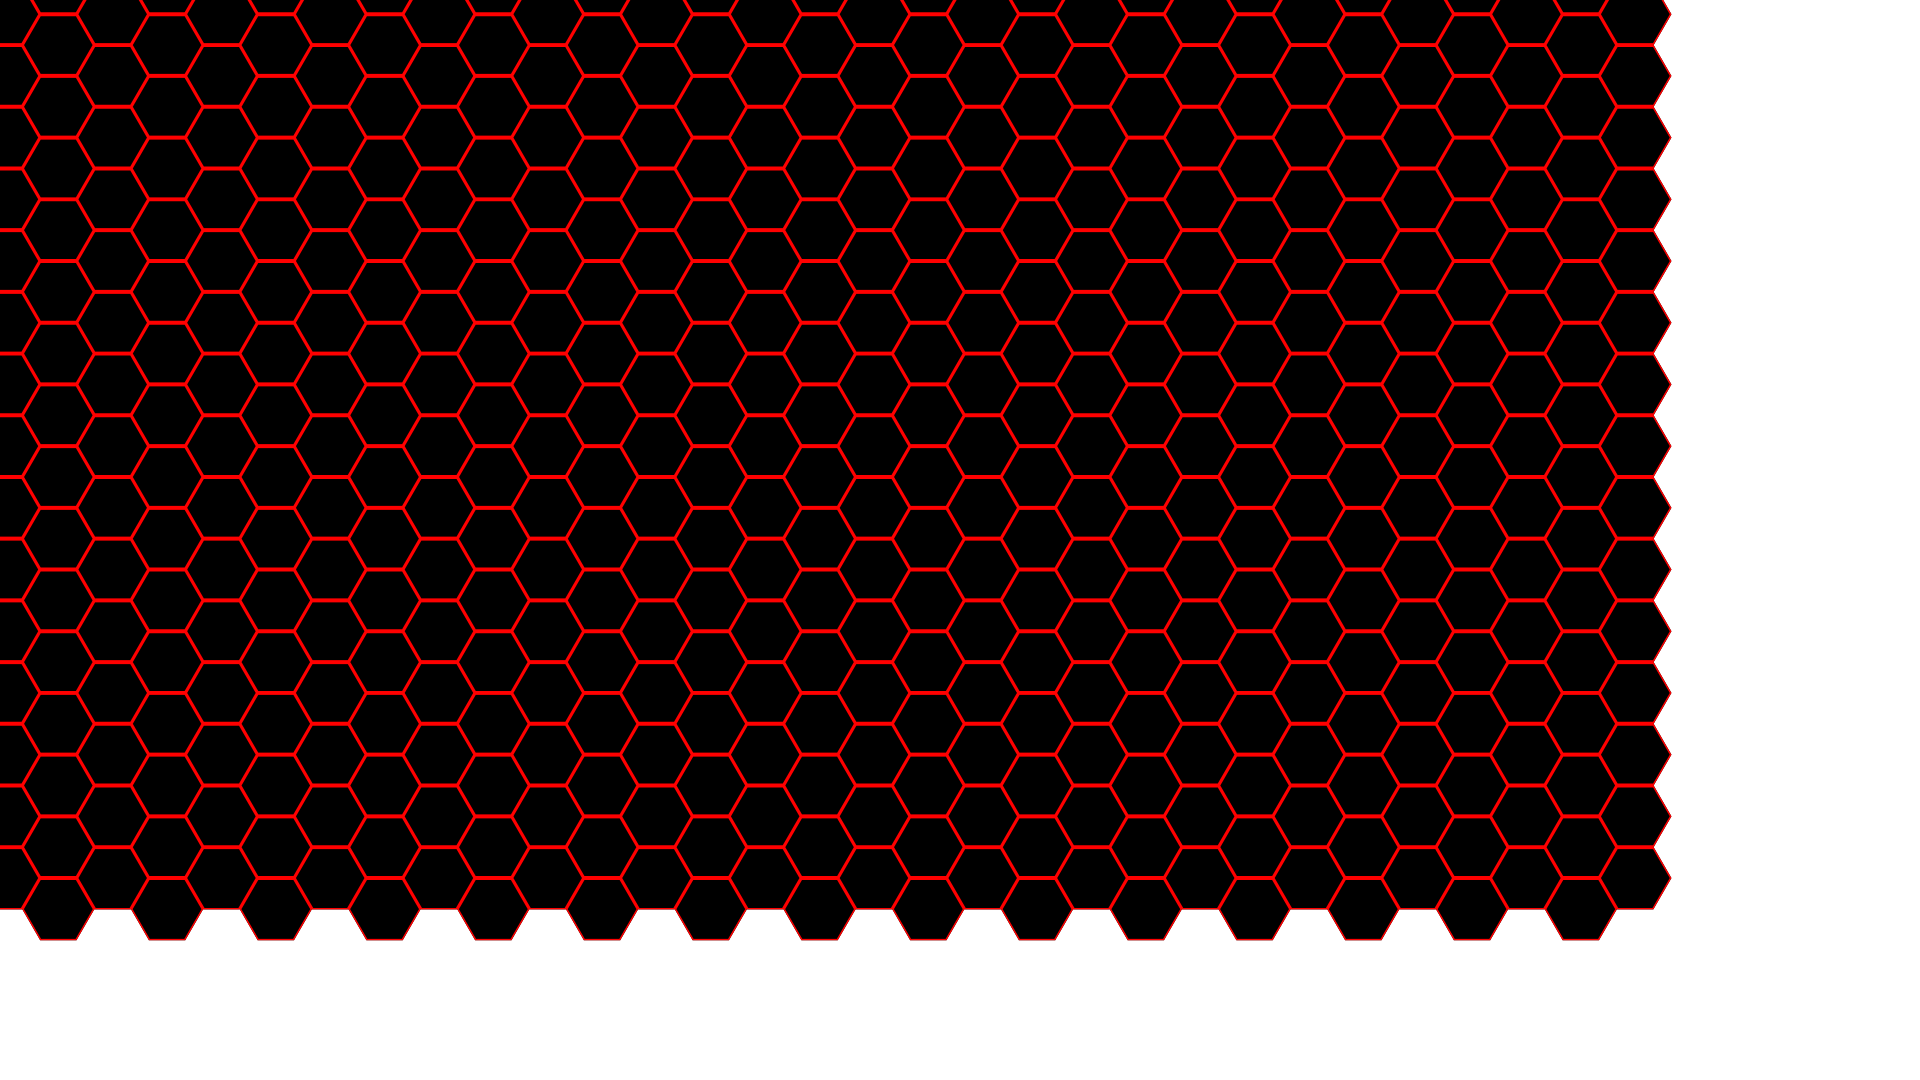 Honeycomb background png 1080. Svg i want to